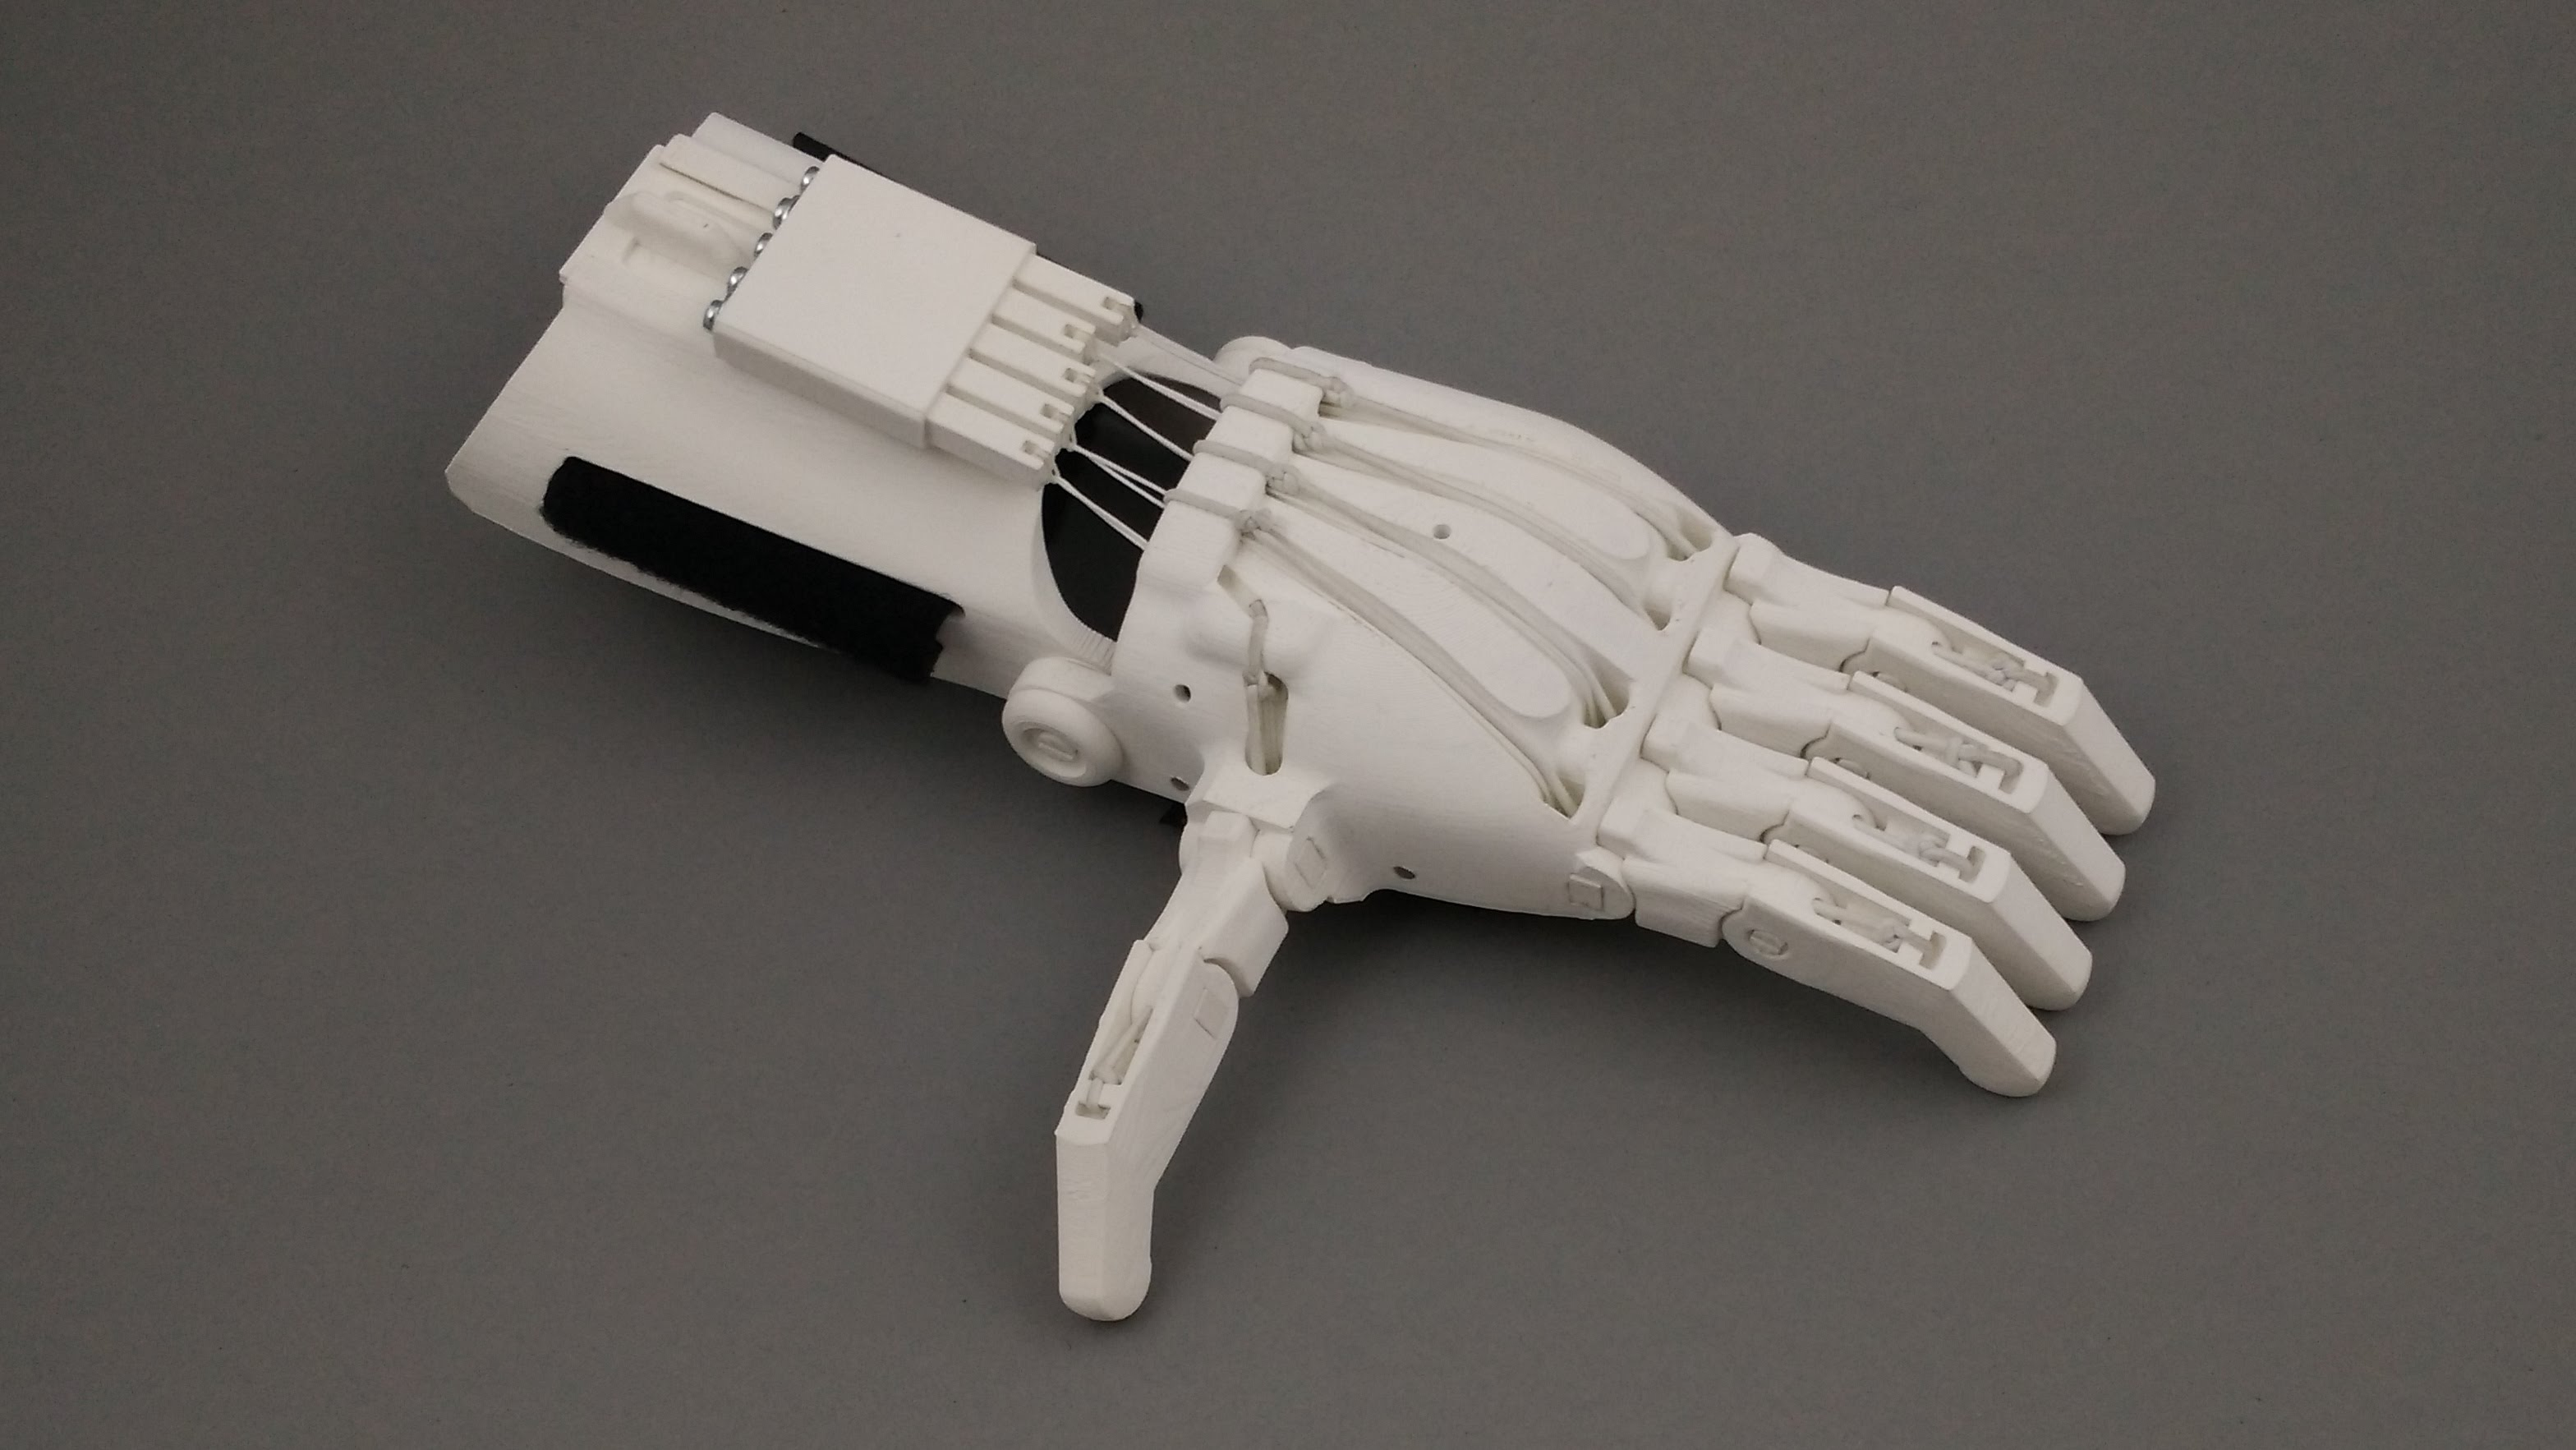 3D printed prosthetics thanks to Handesign?